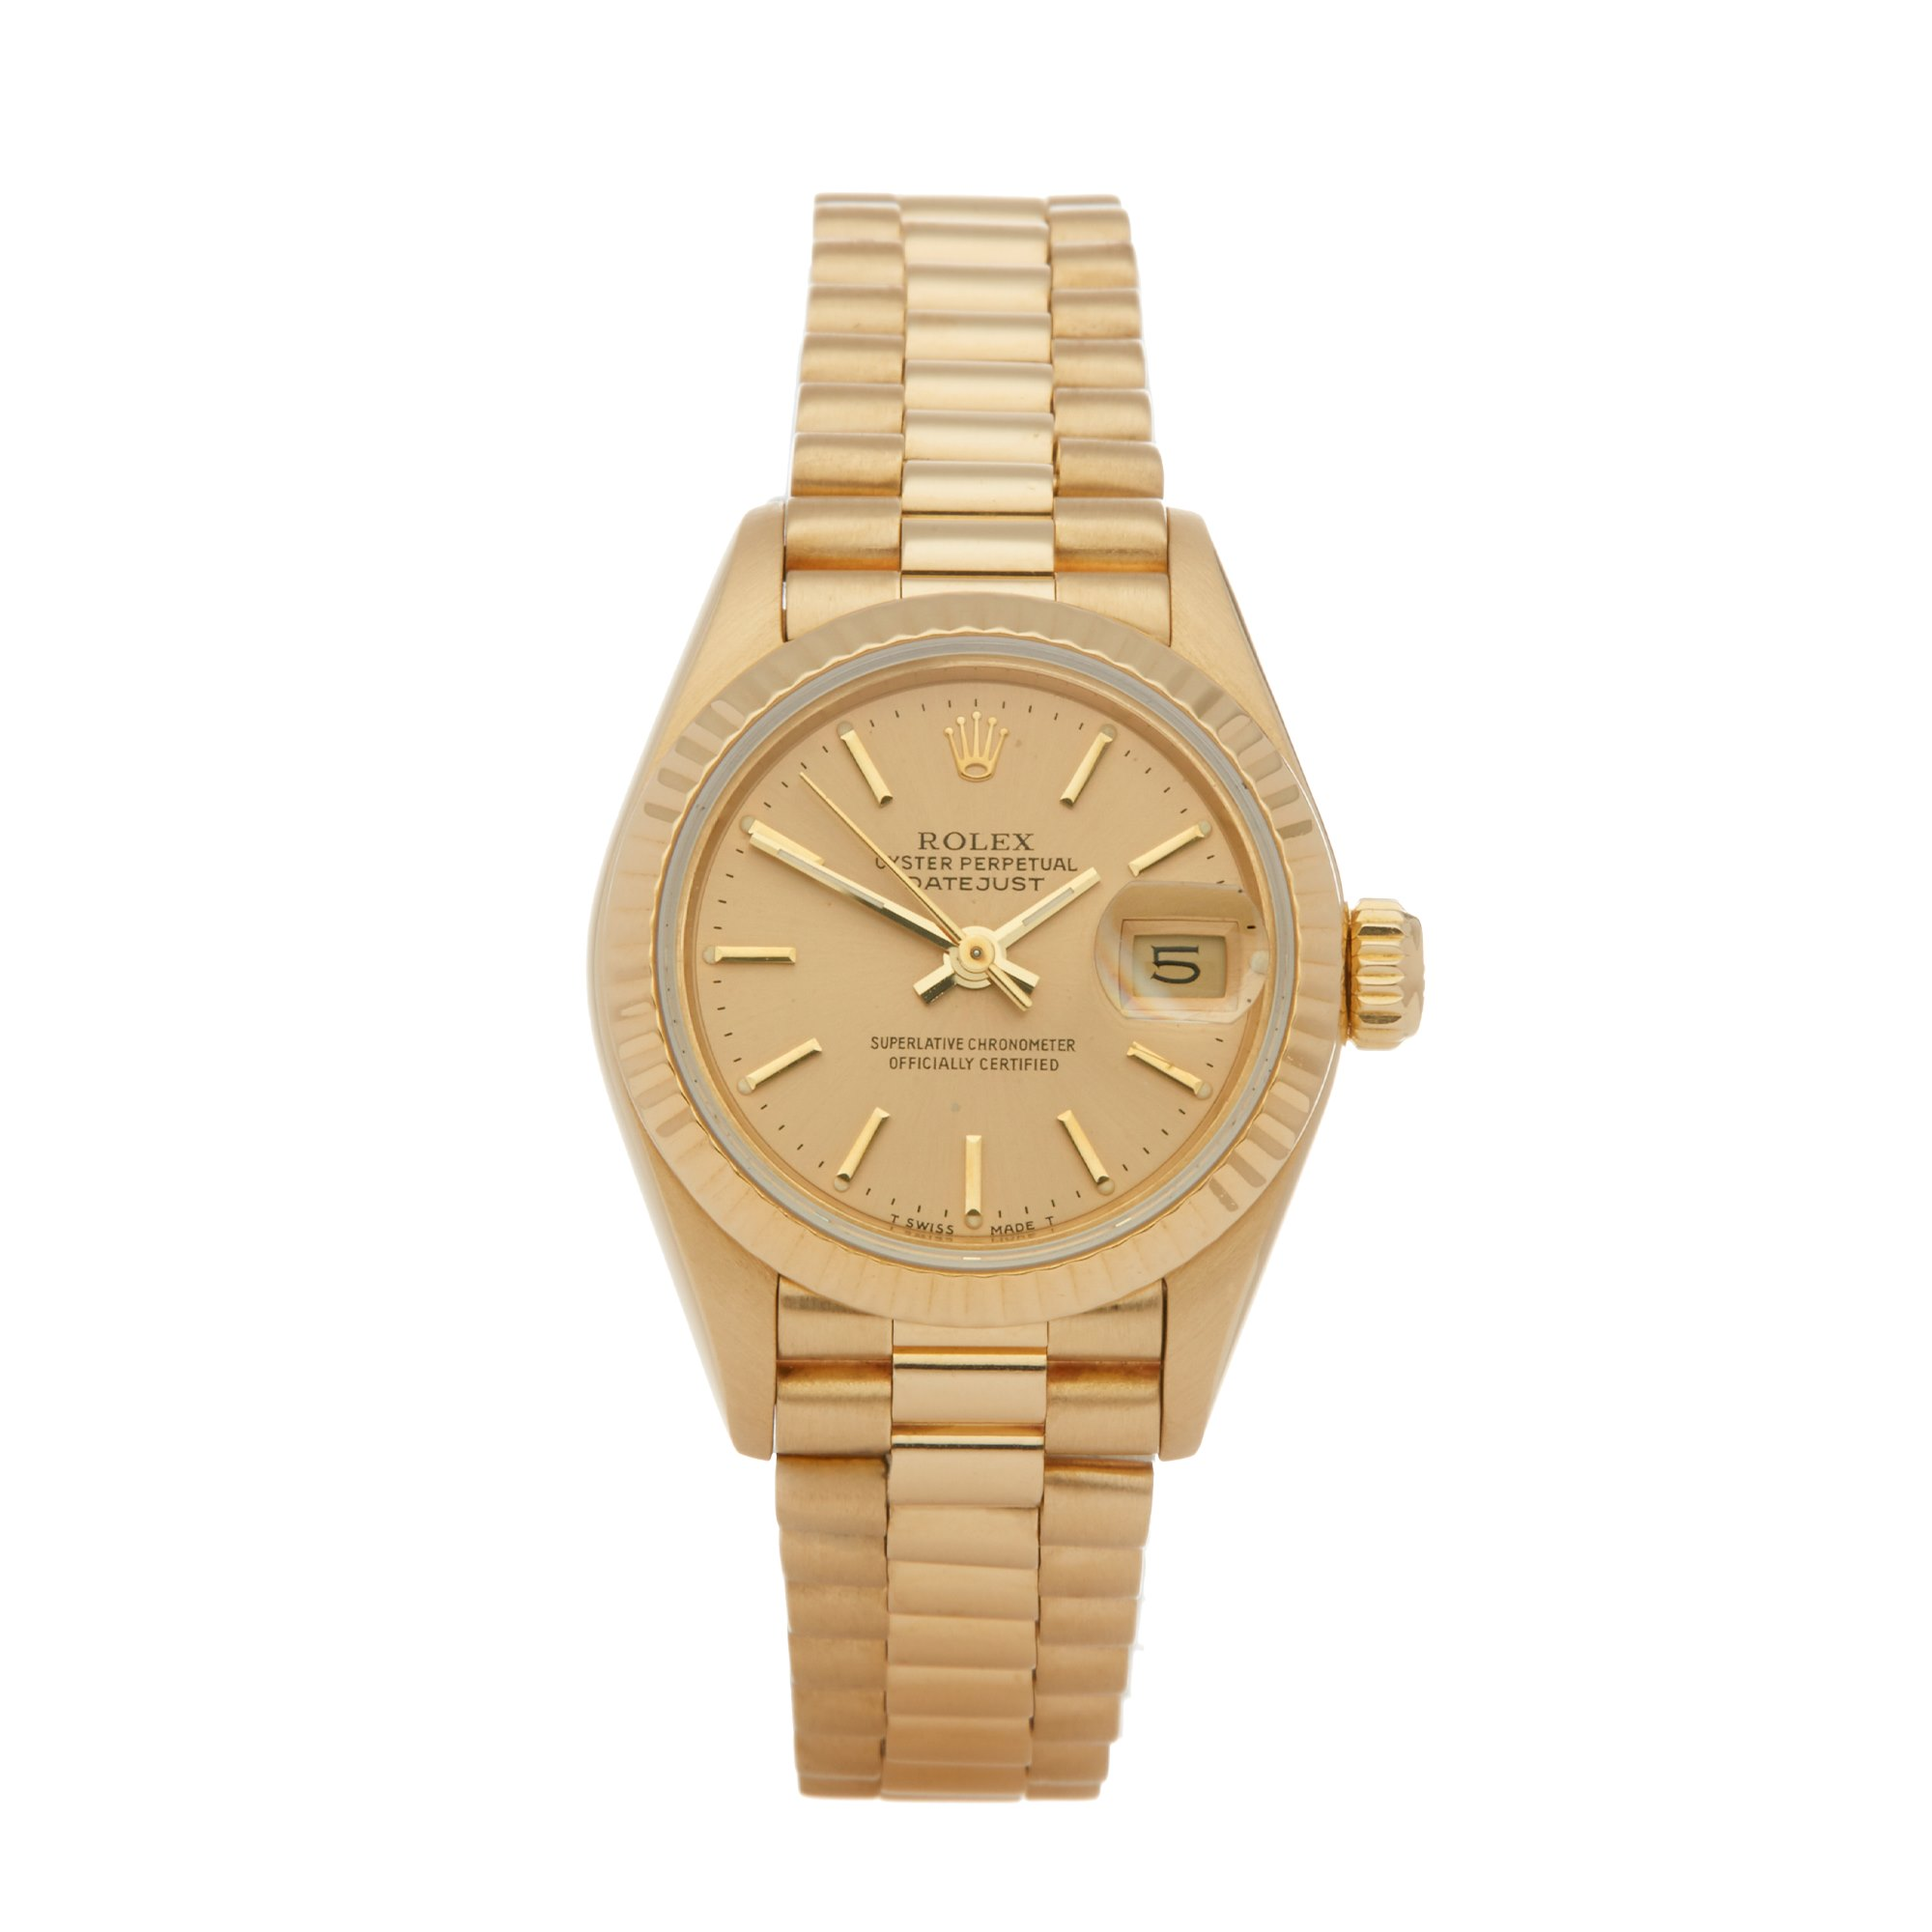 Rolex Datejust 26 Jubilee Dial 18K Yellow Gold 69178